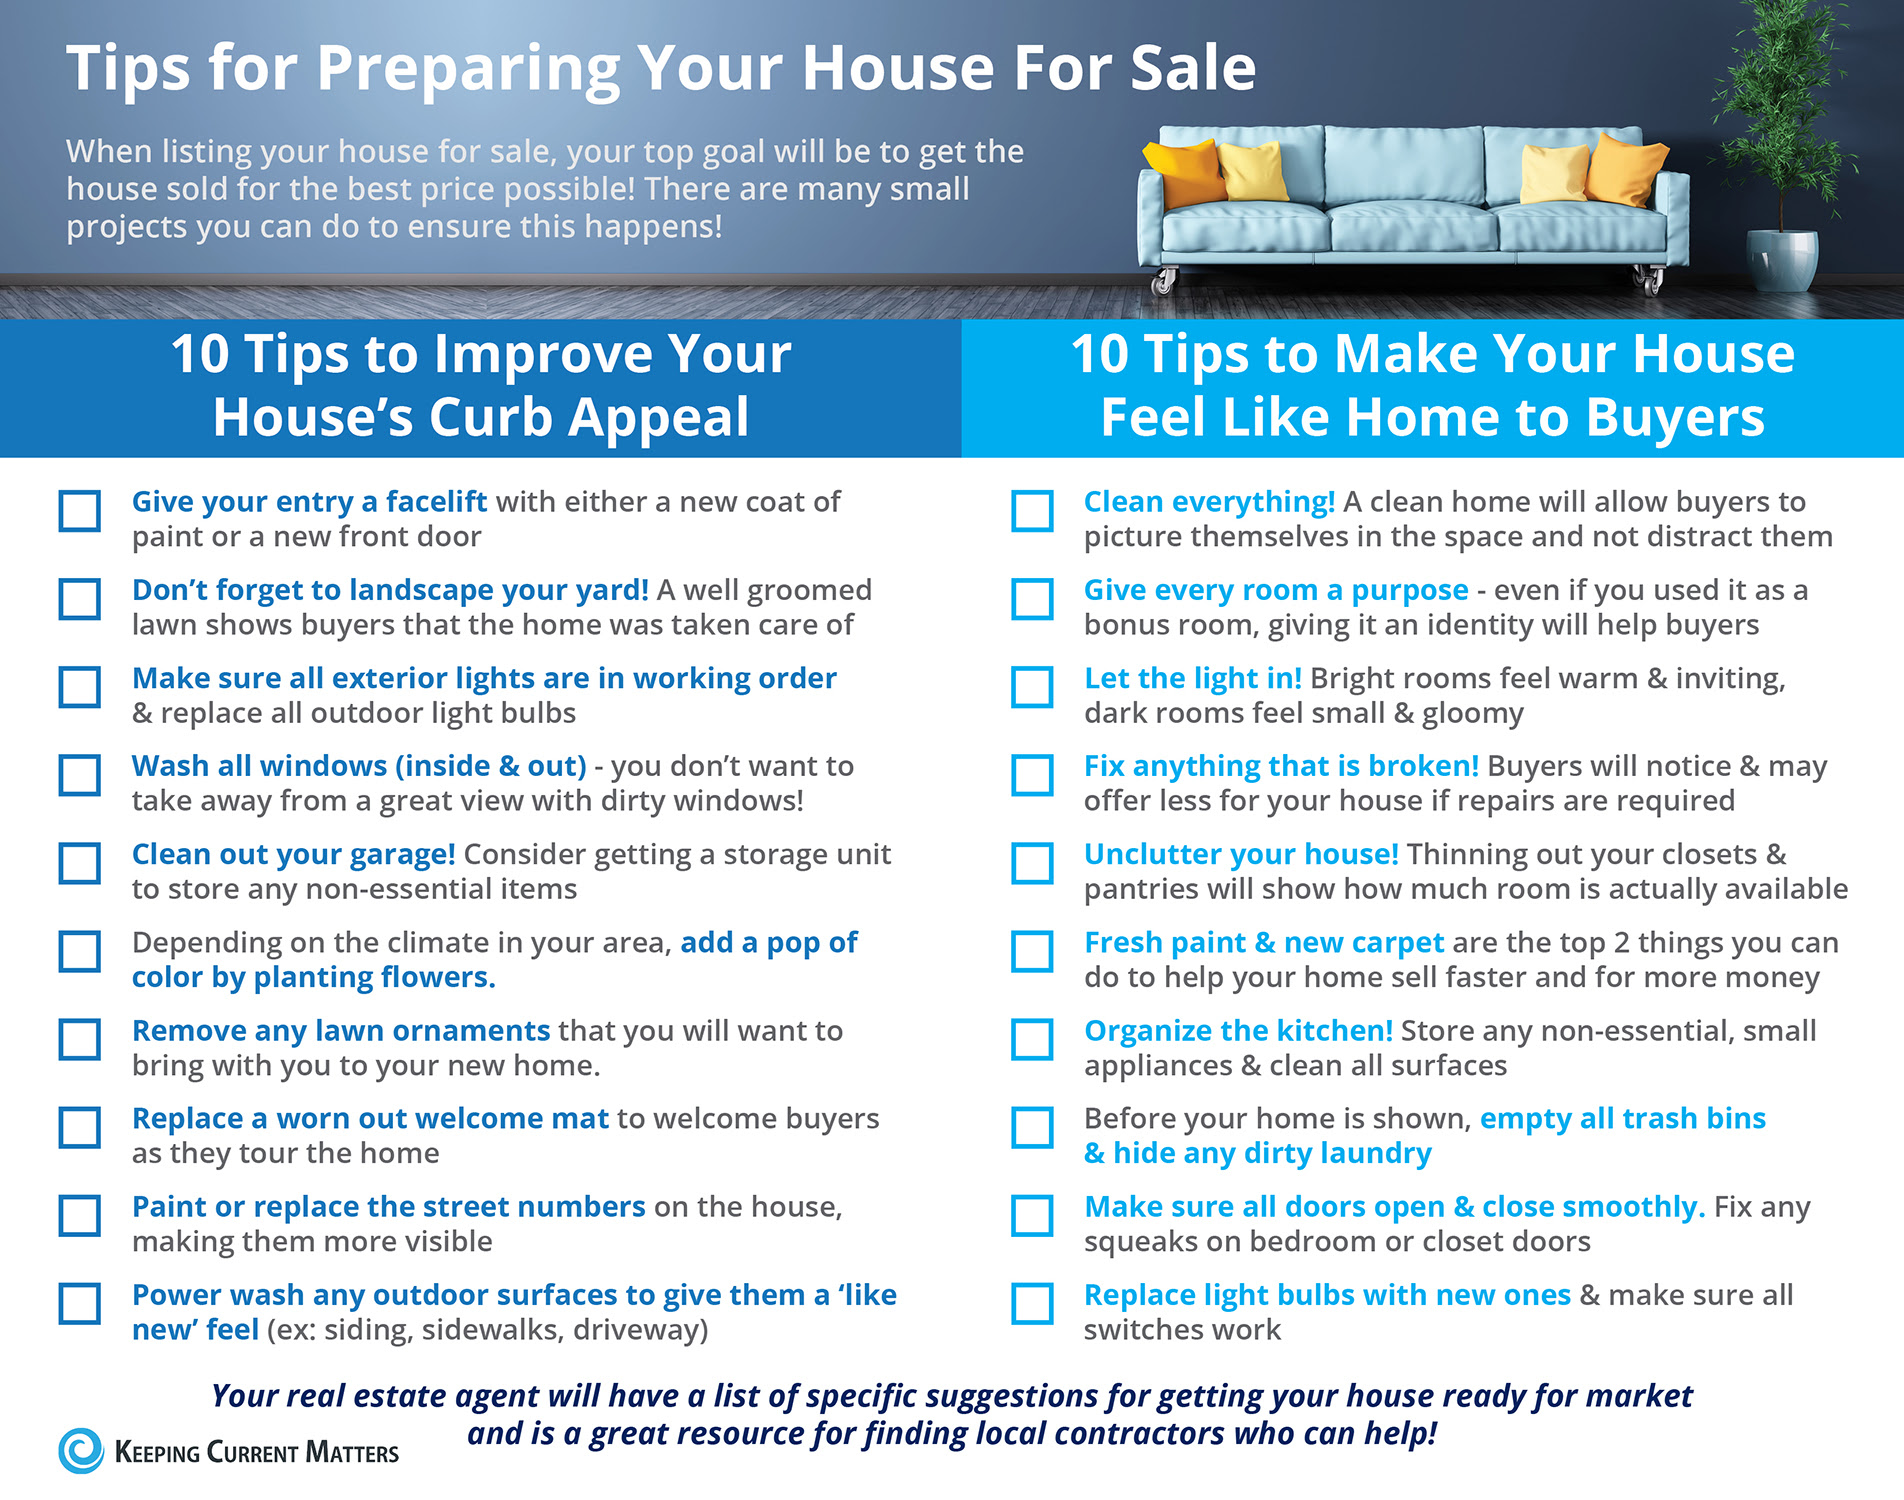 20 Tips for Preparing Your House for Sale [INFOGRAPHIC] | Keeping Current Matters